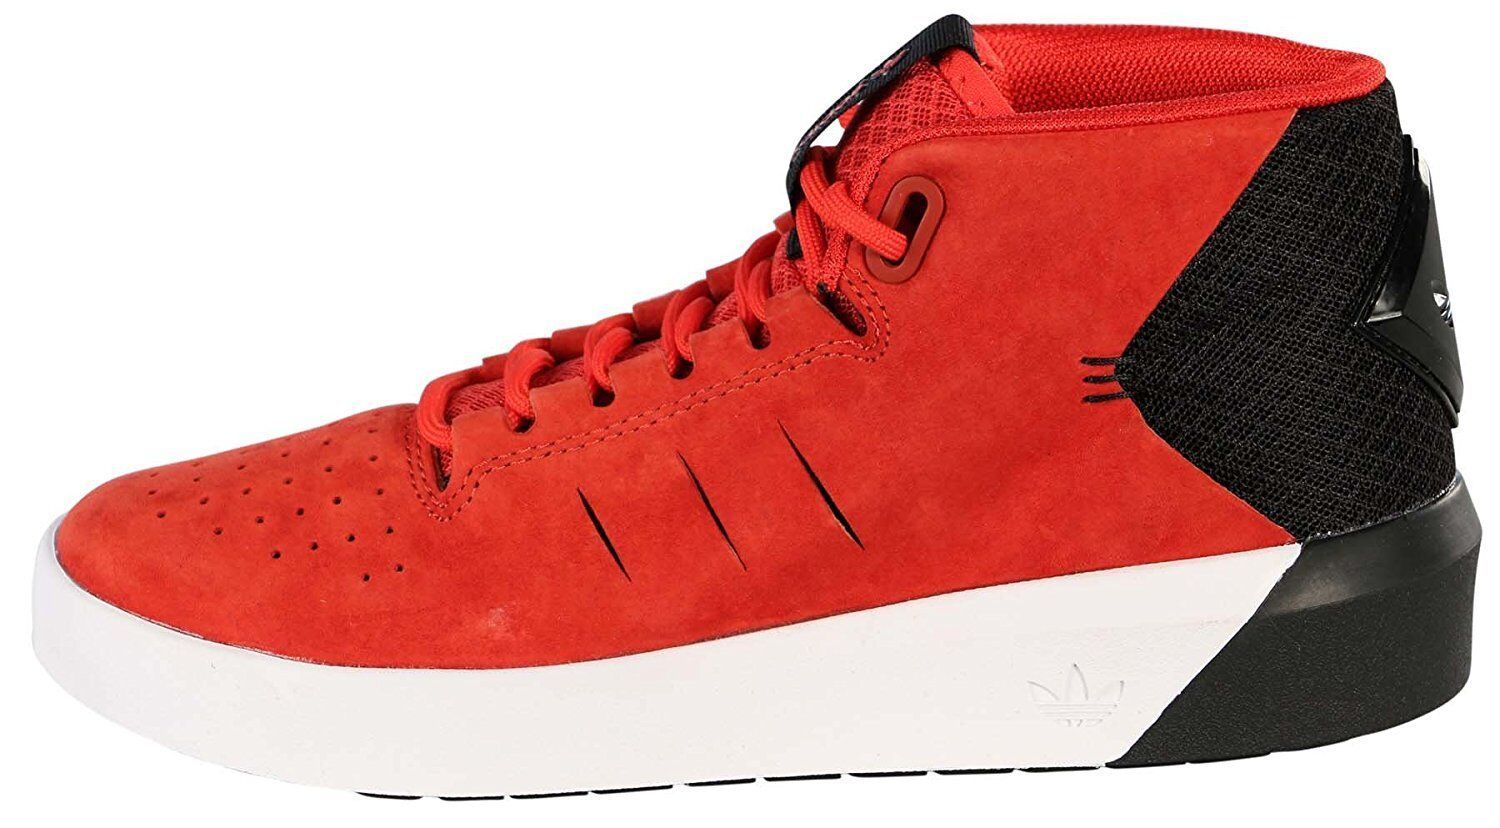 New~Adidas NORTHRUP MID Suede Court promodel Vantage Shoes Basketball~Mens Price reduction